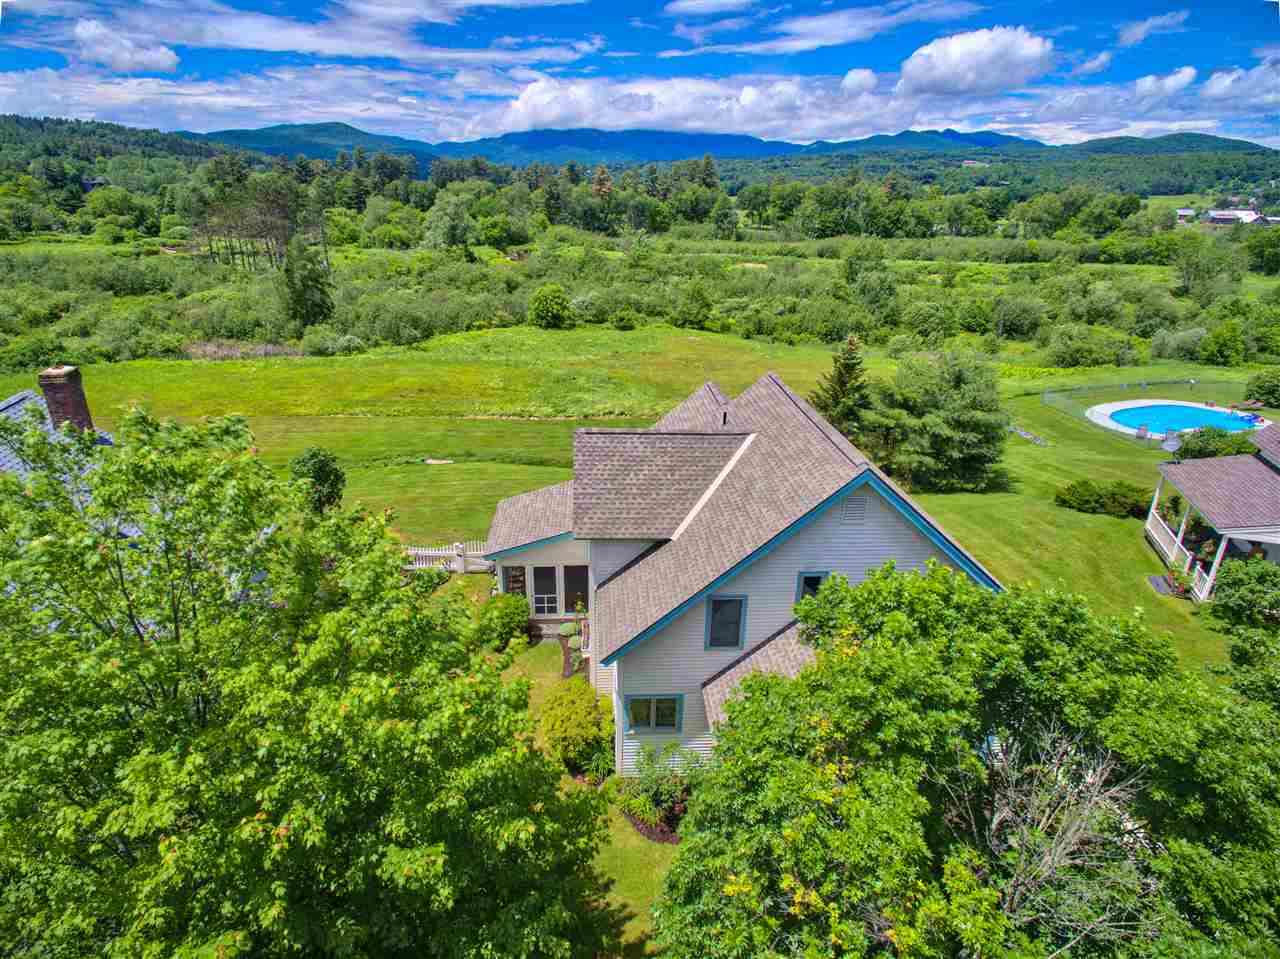 97 West Hill Road 14, Stowe, VT 05672